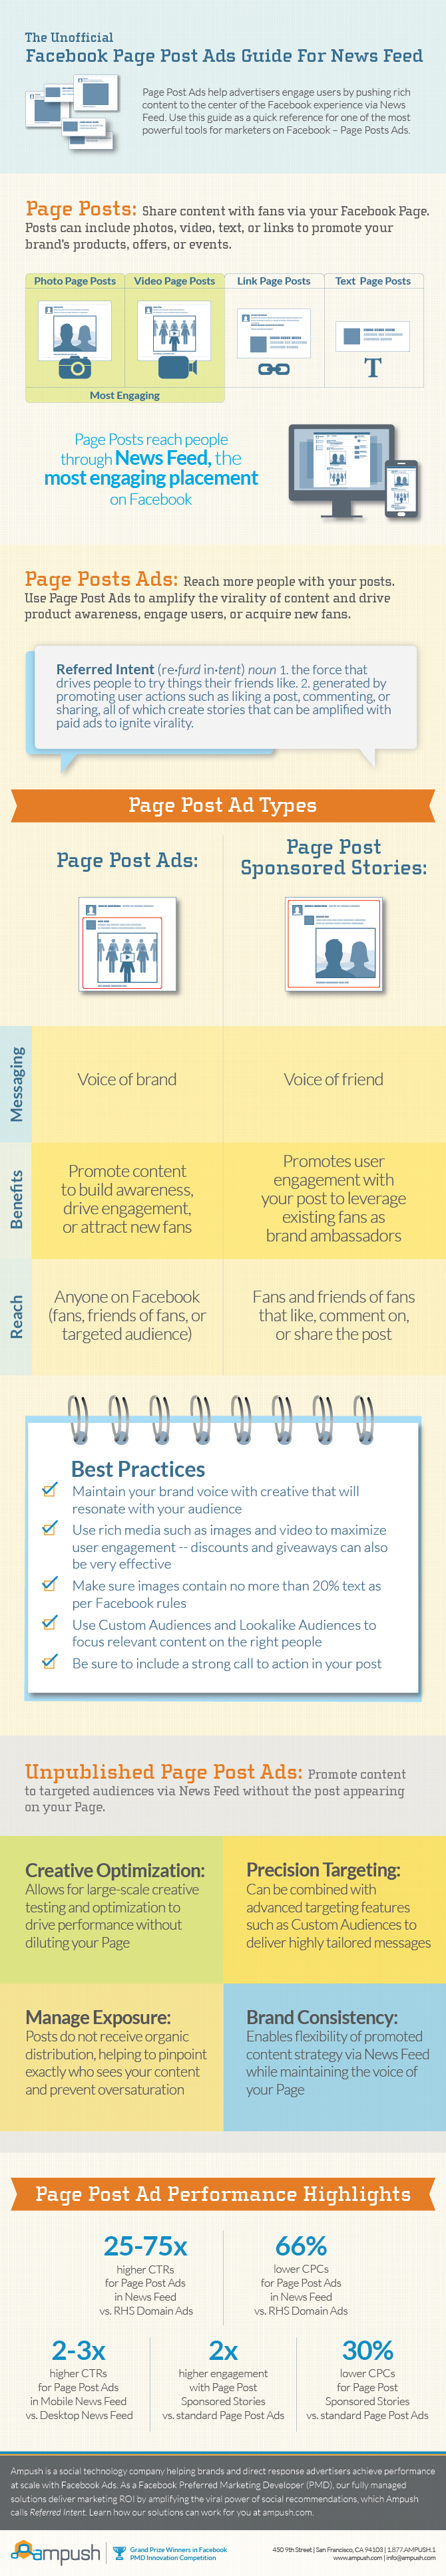 Infographic: A Guide To Facebook Page Post Ads | Facebook